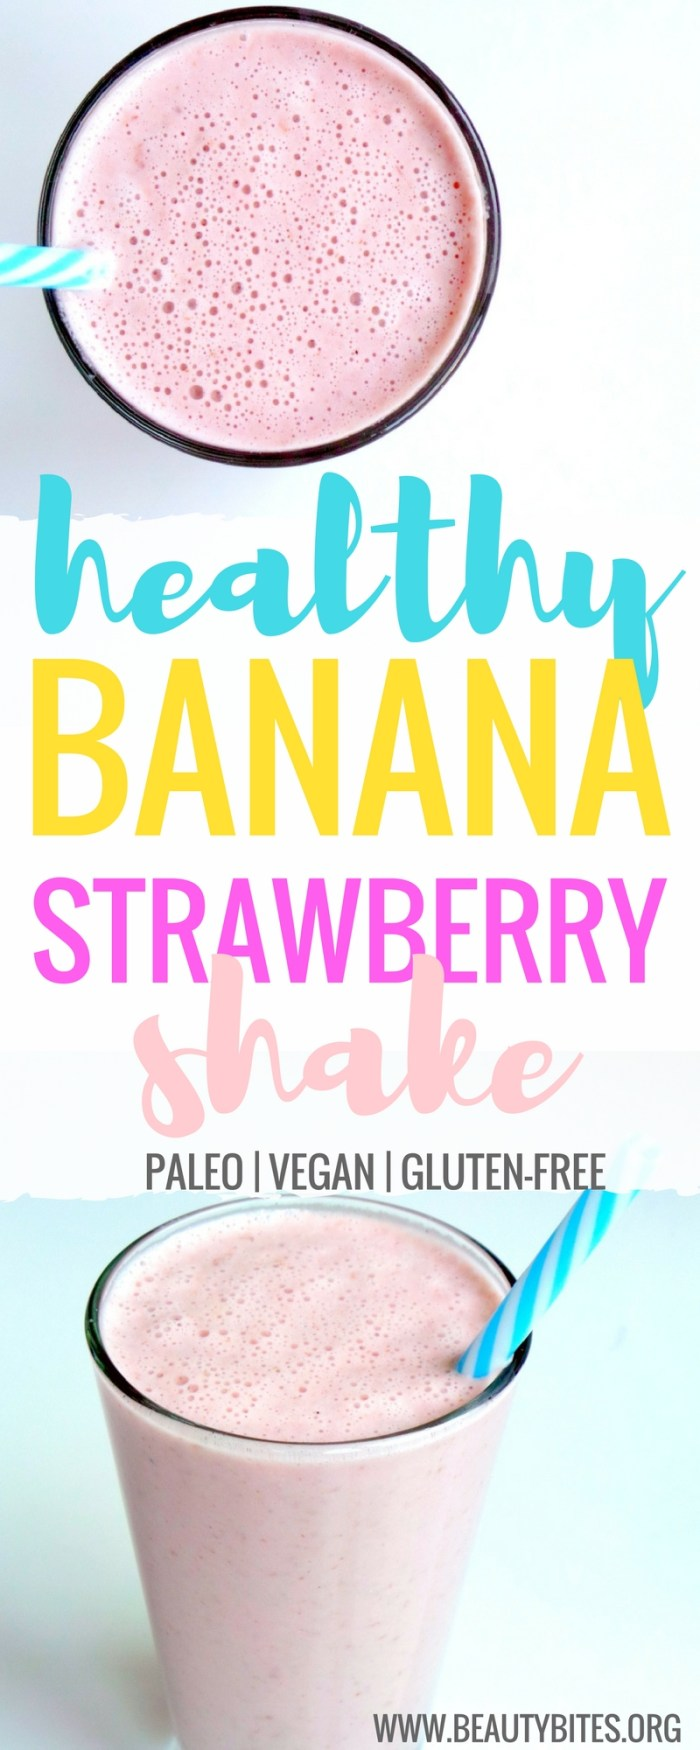 Healthy strawberry banana shake that is vegan, paleo & gluten-free! If you're looking for a tasty & healthy snack - this easy clean eating recipe is for you | www.beautybites.org